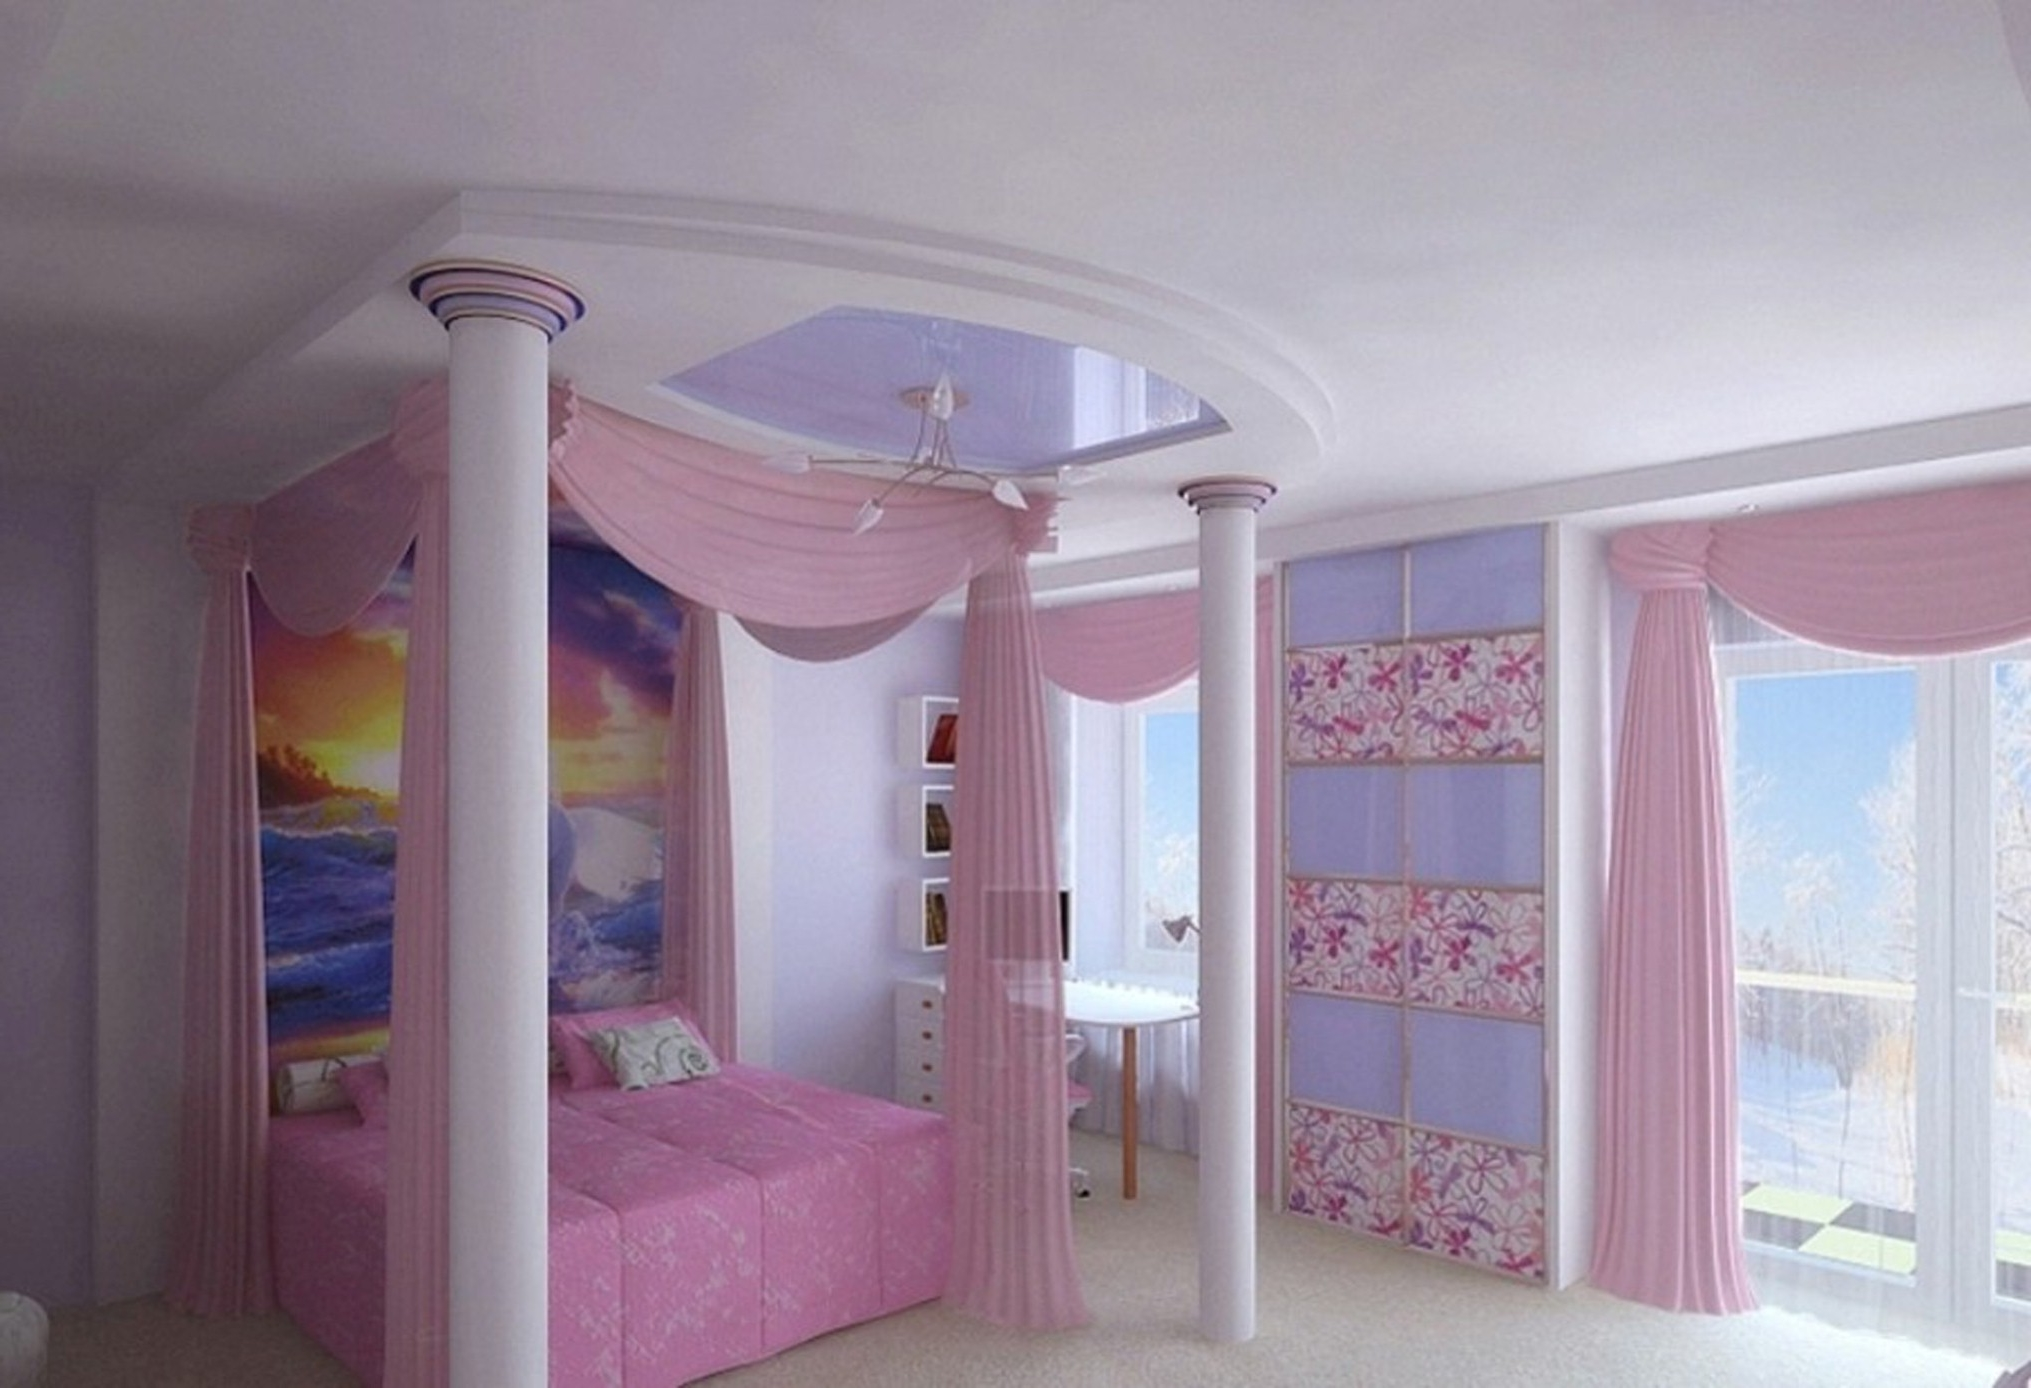 neat-inspirational-pink-purple-teenage-bedroom-decorating-idea-with-white-poles-also-glass-doors-design